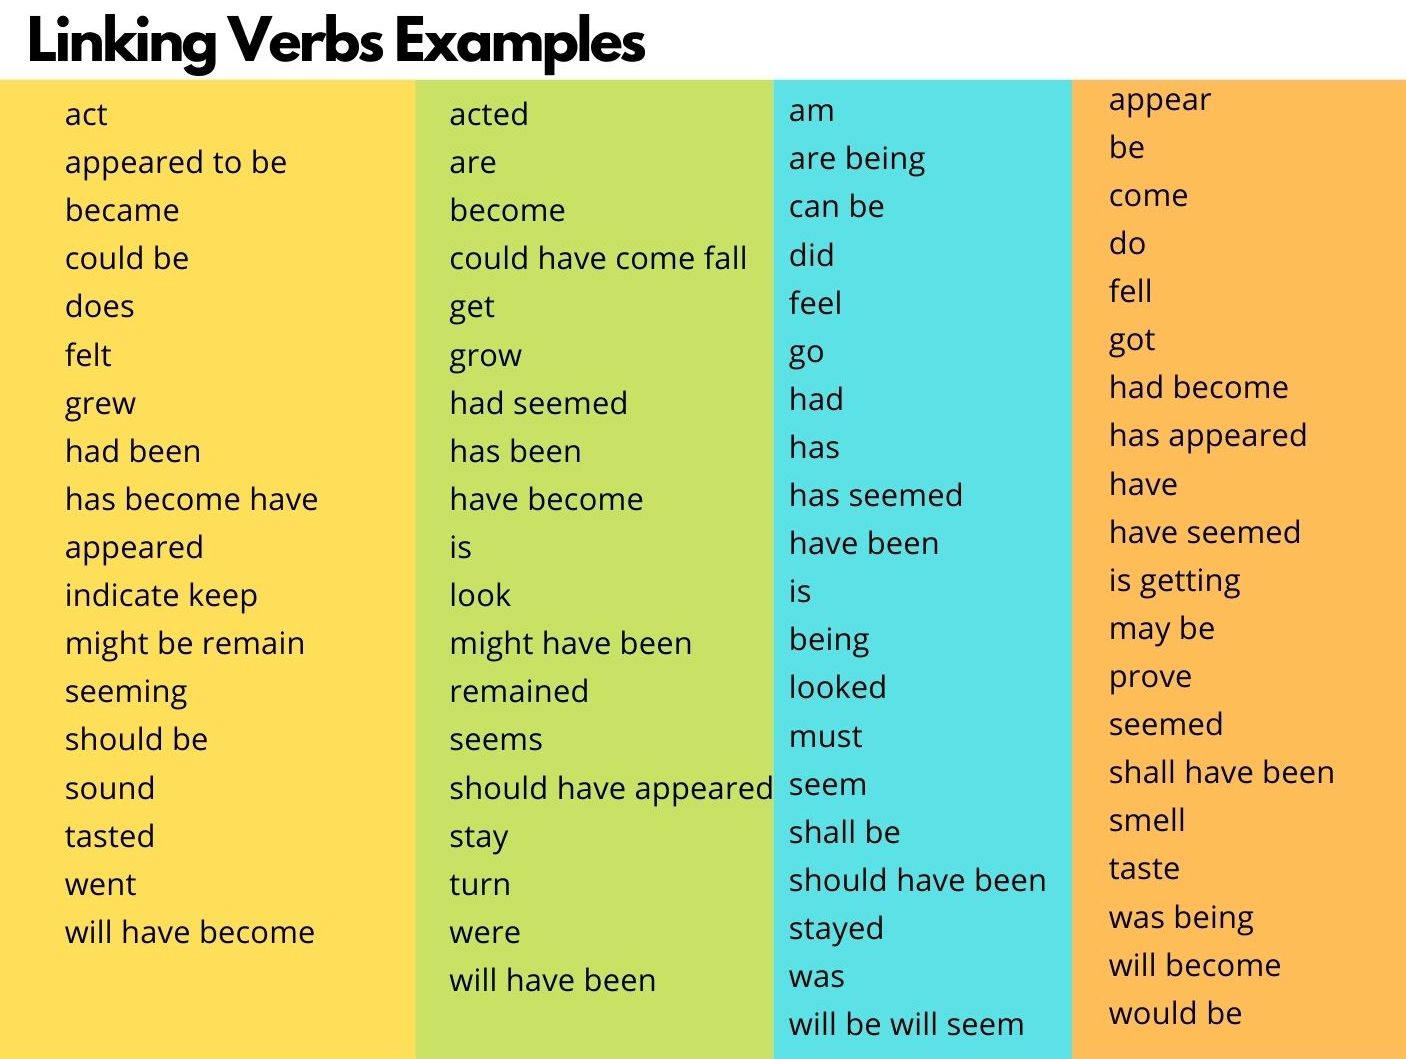 A list of common linking verbs